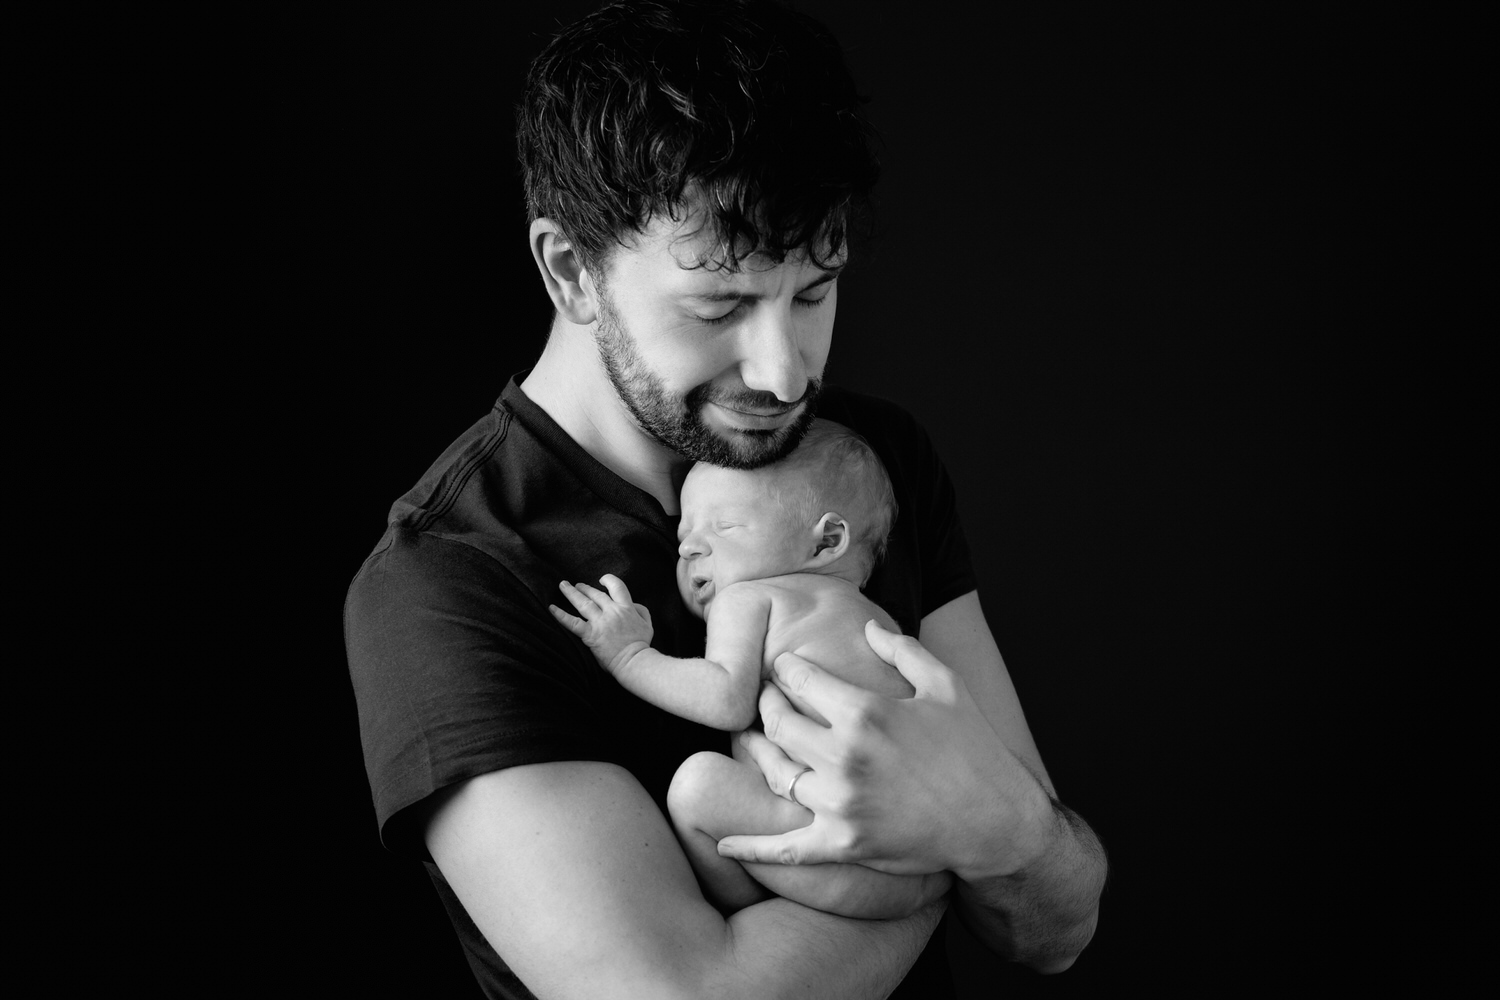 a newborn baby held by his Dad during a studio photography shoot